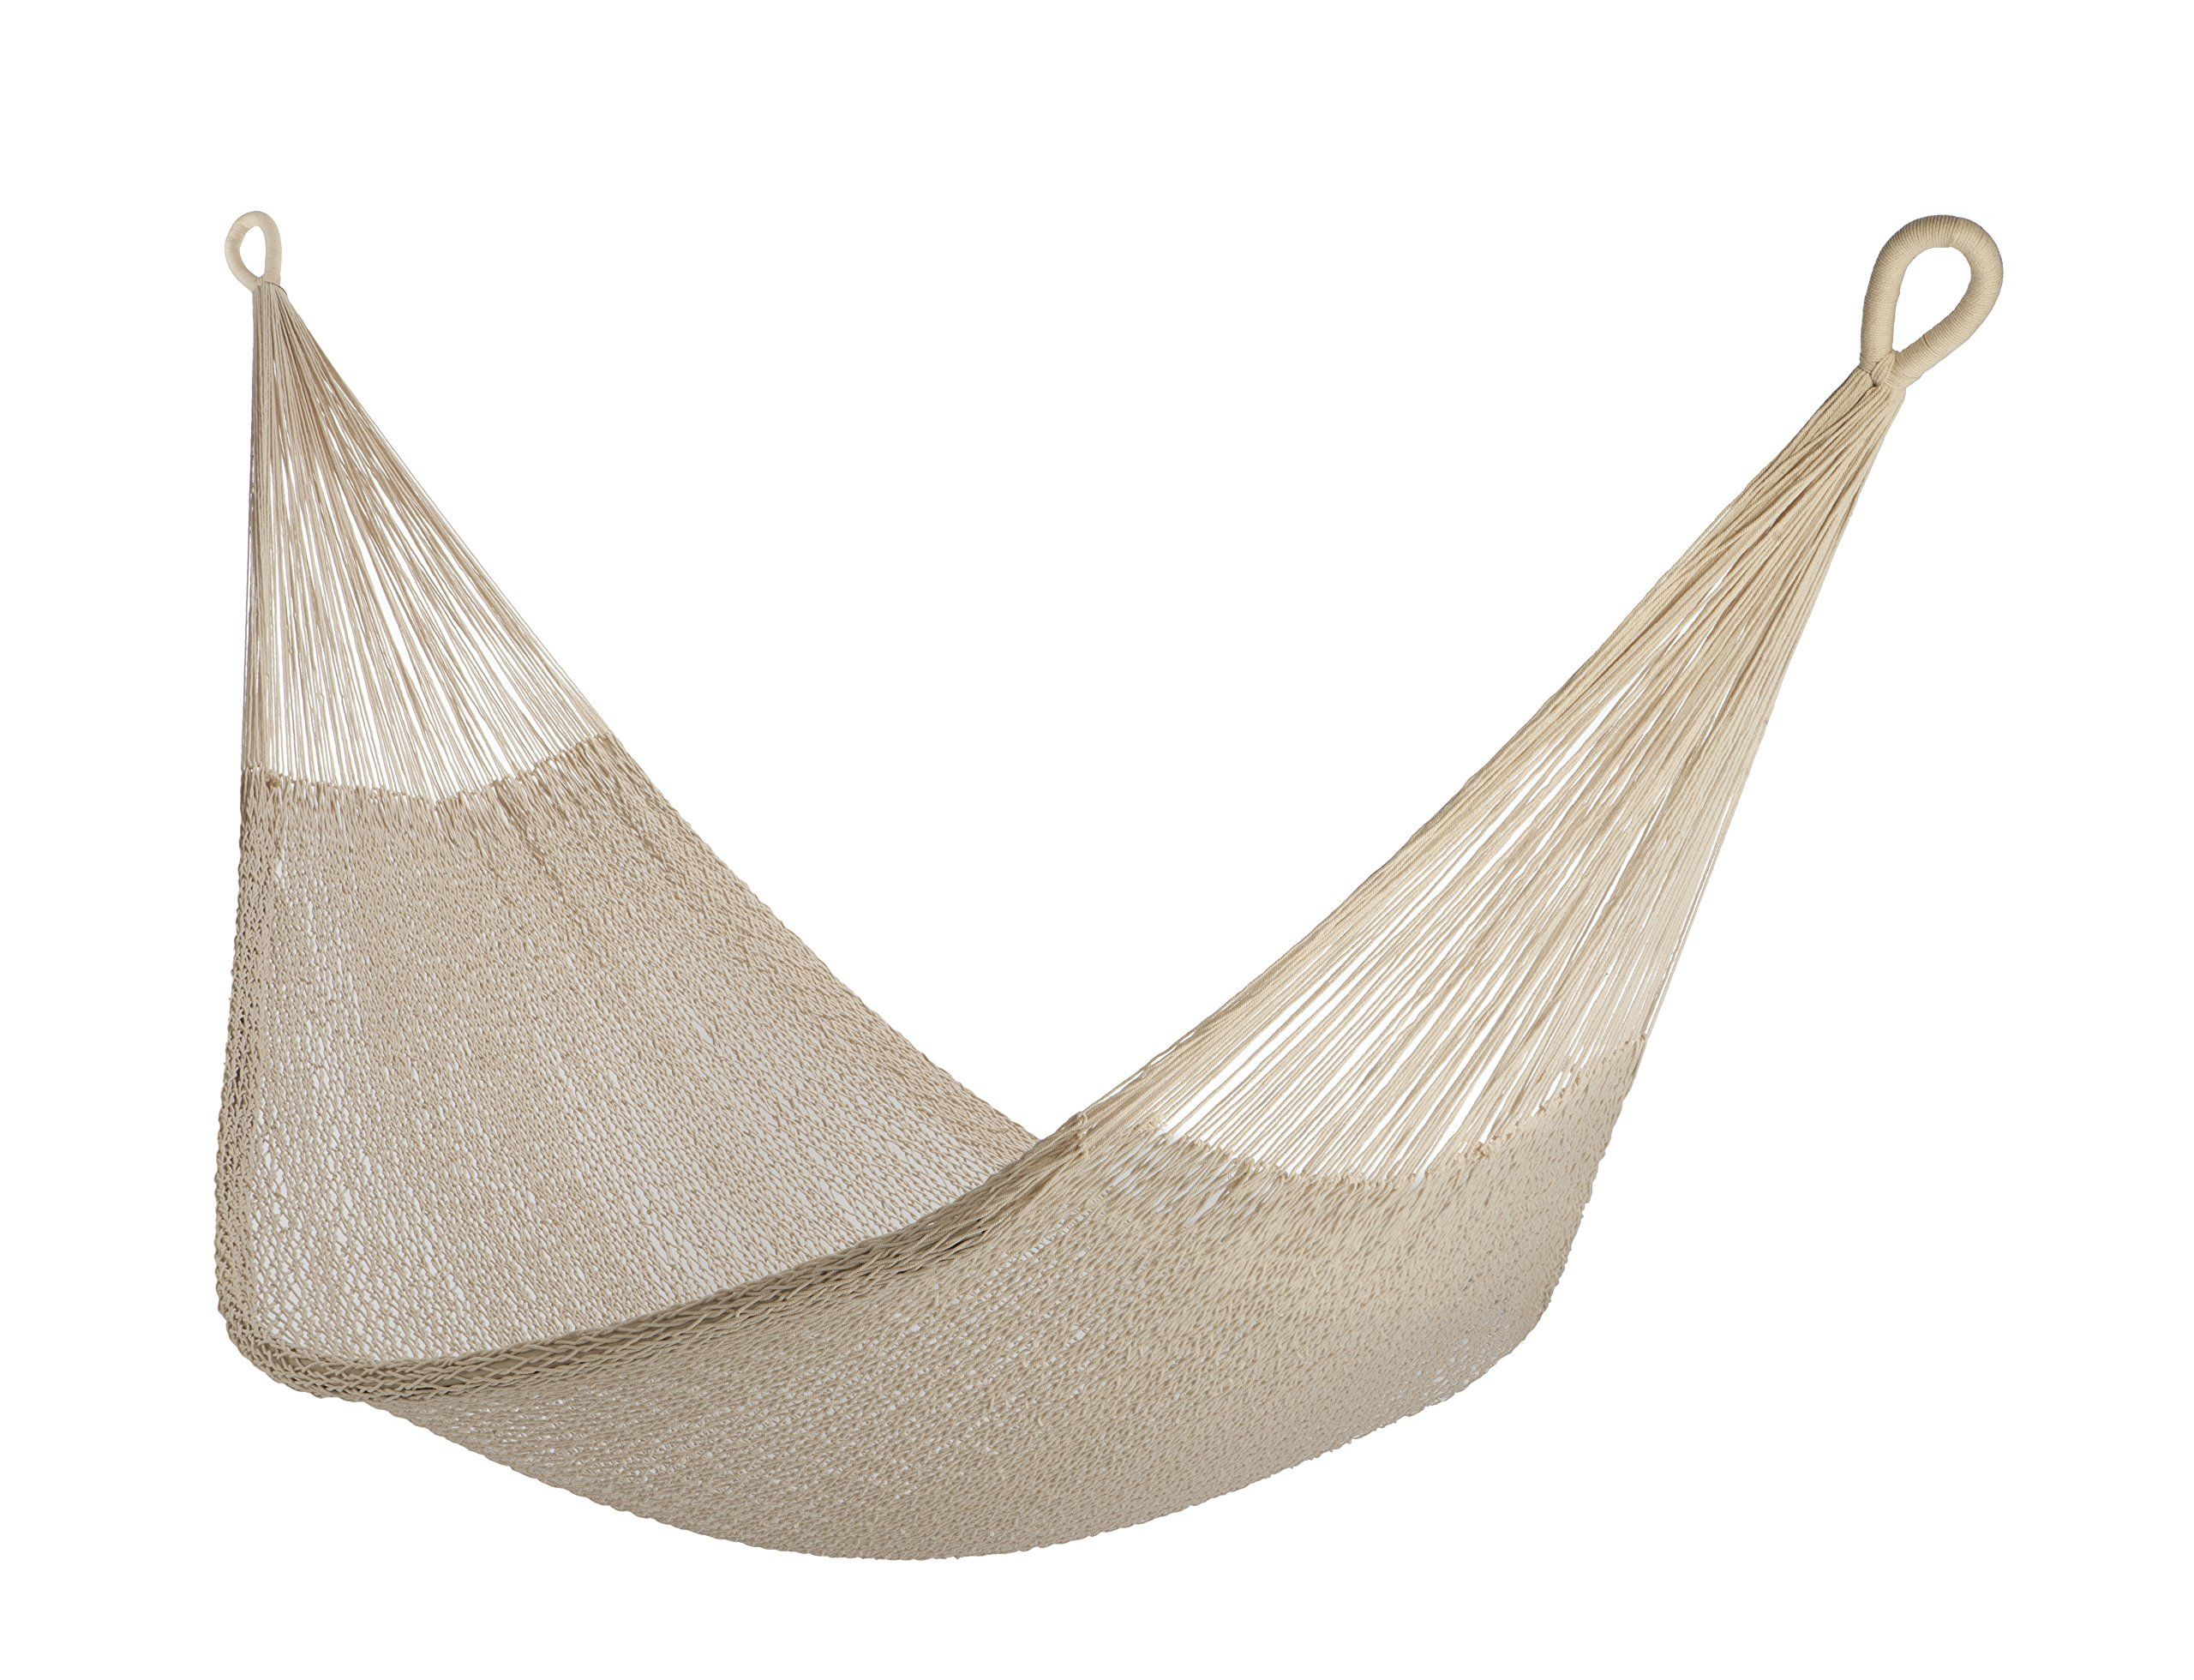 Yellow Leaf Hammocks MT Catalina Rope Hammock, Fits 1-2 people (400 lbs), Natural (Undyed) Cotton - 100% hand-woven with hand-dyed cotton rope Maximum Capacity: 400 lbs Optimal Hanging Distance: 9-12 ft - patio-furniture, patio, hammocks - 91htpJ5eIgL -